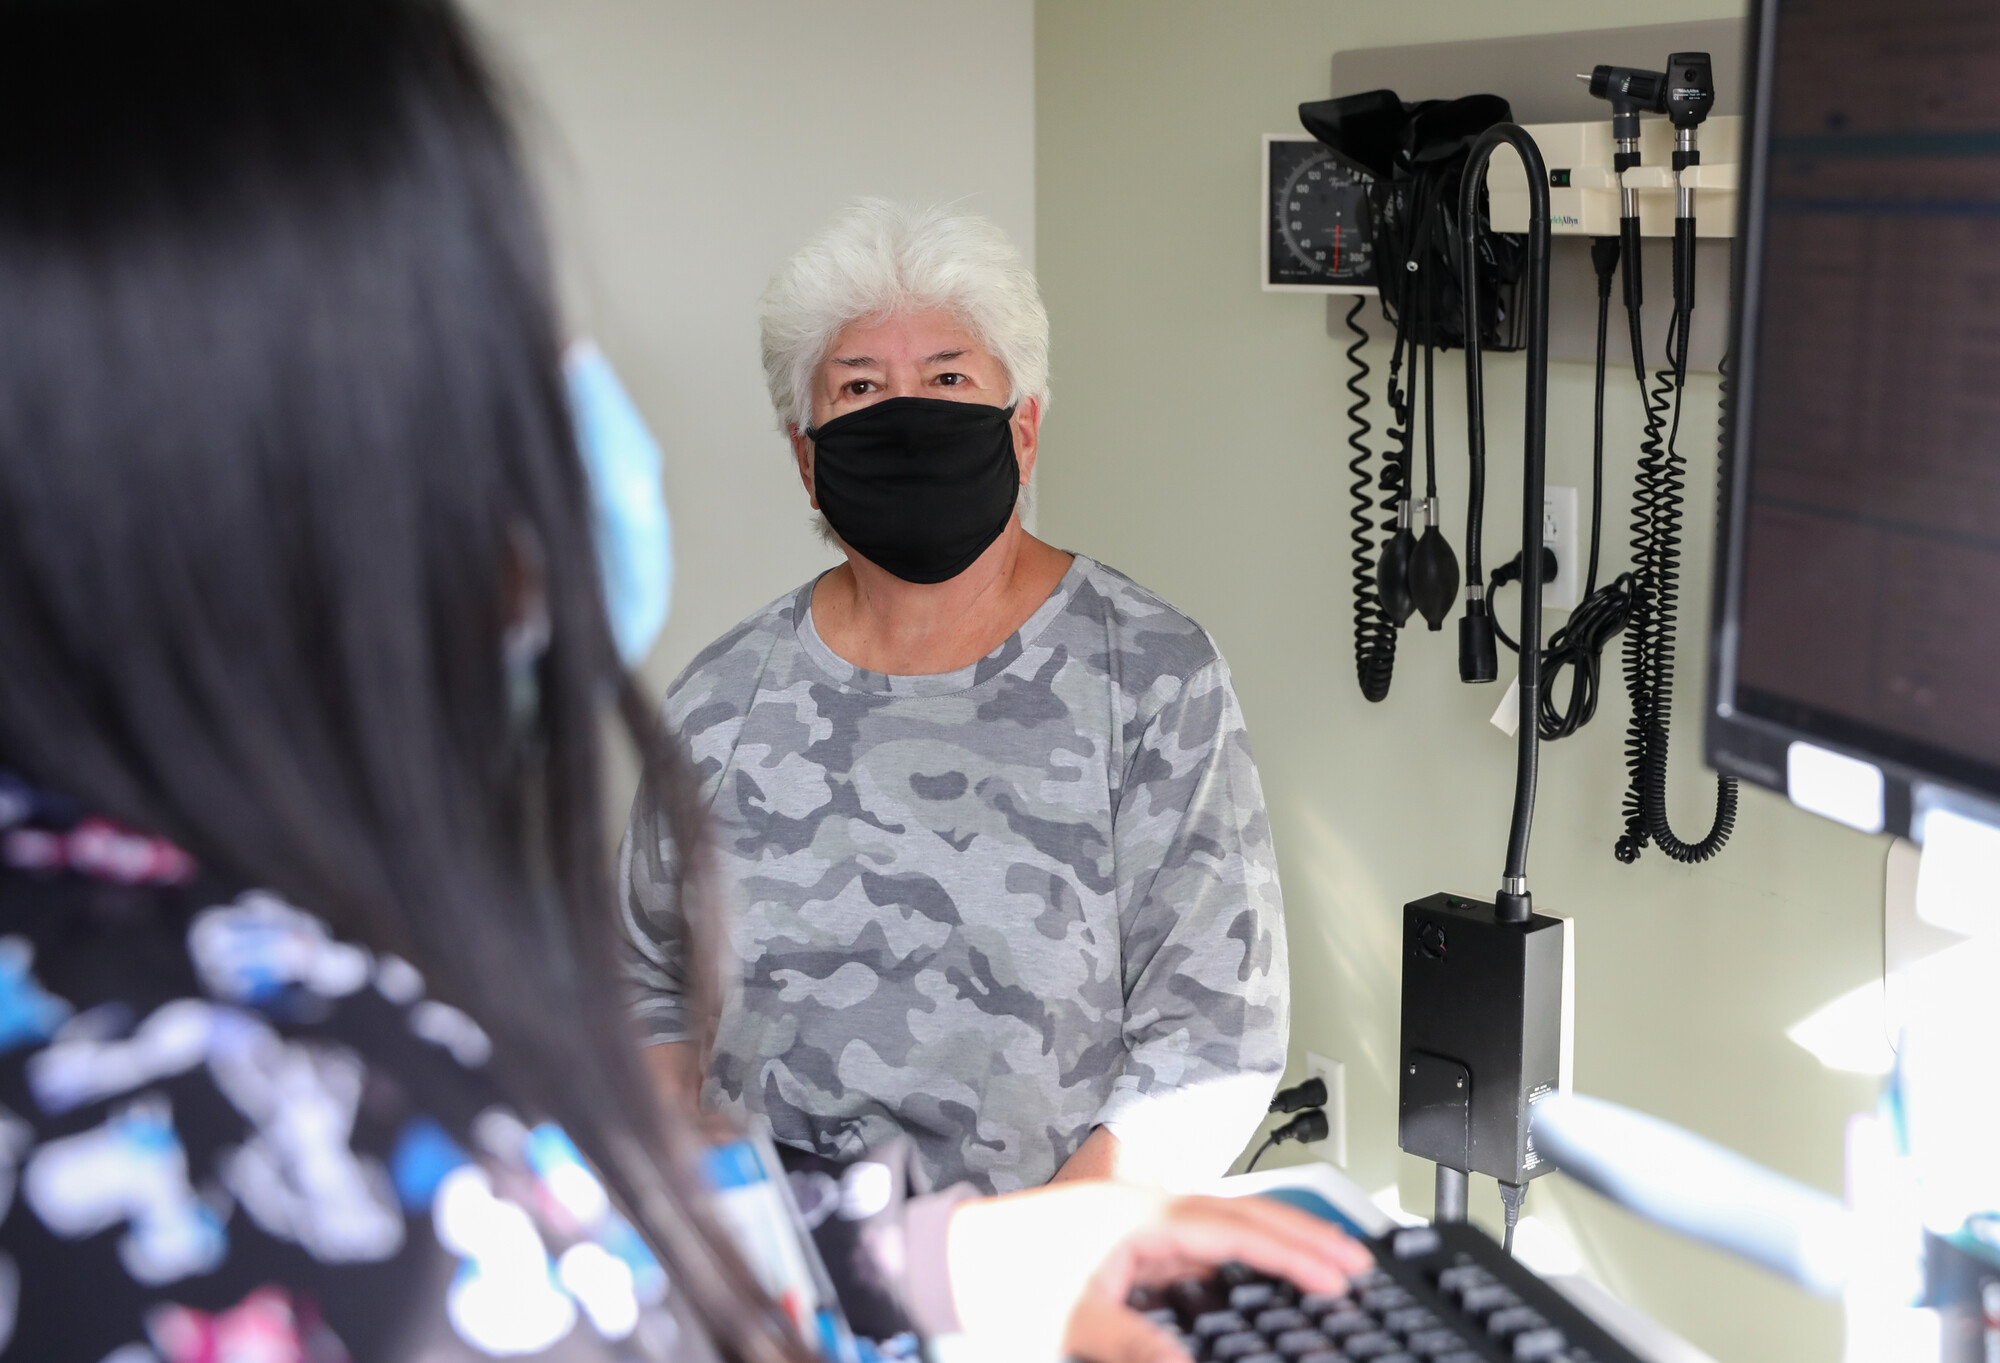 Elderly female patient in a doctor's office, wearing a mask